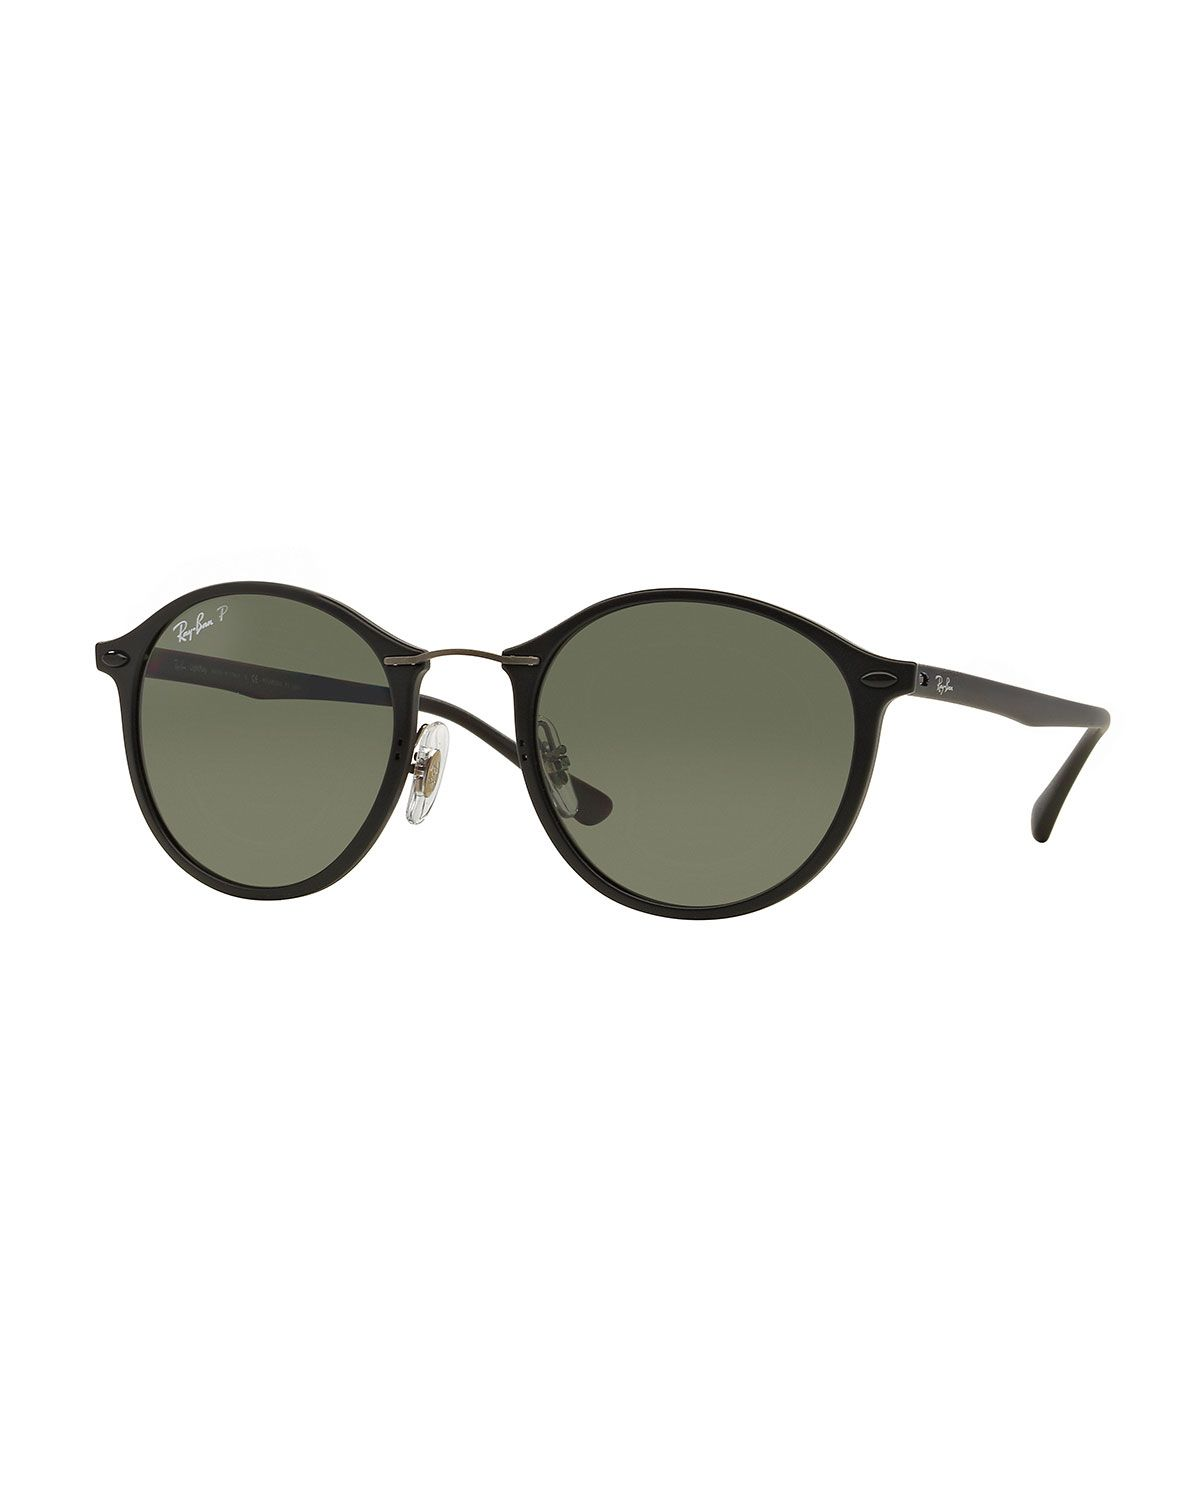 26c9e66b800 Ray-Ban classic round sunglasses. Plastic frames with metal wire nose  bridge. Solid tonal lenses. Silicone nosepieces for no-slip fit.